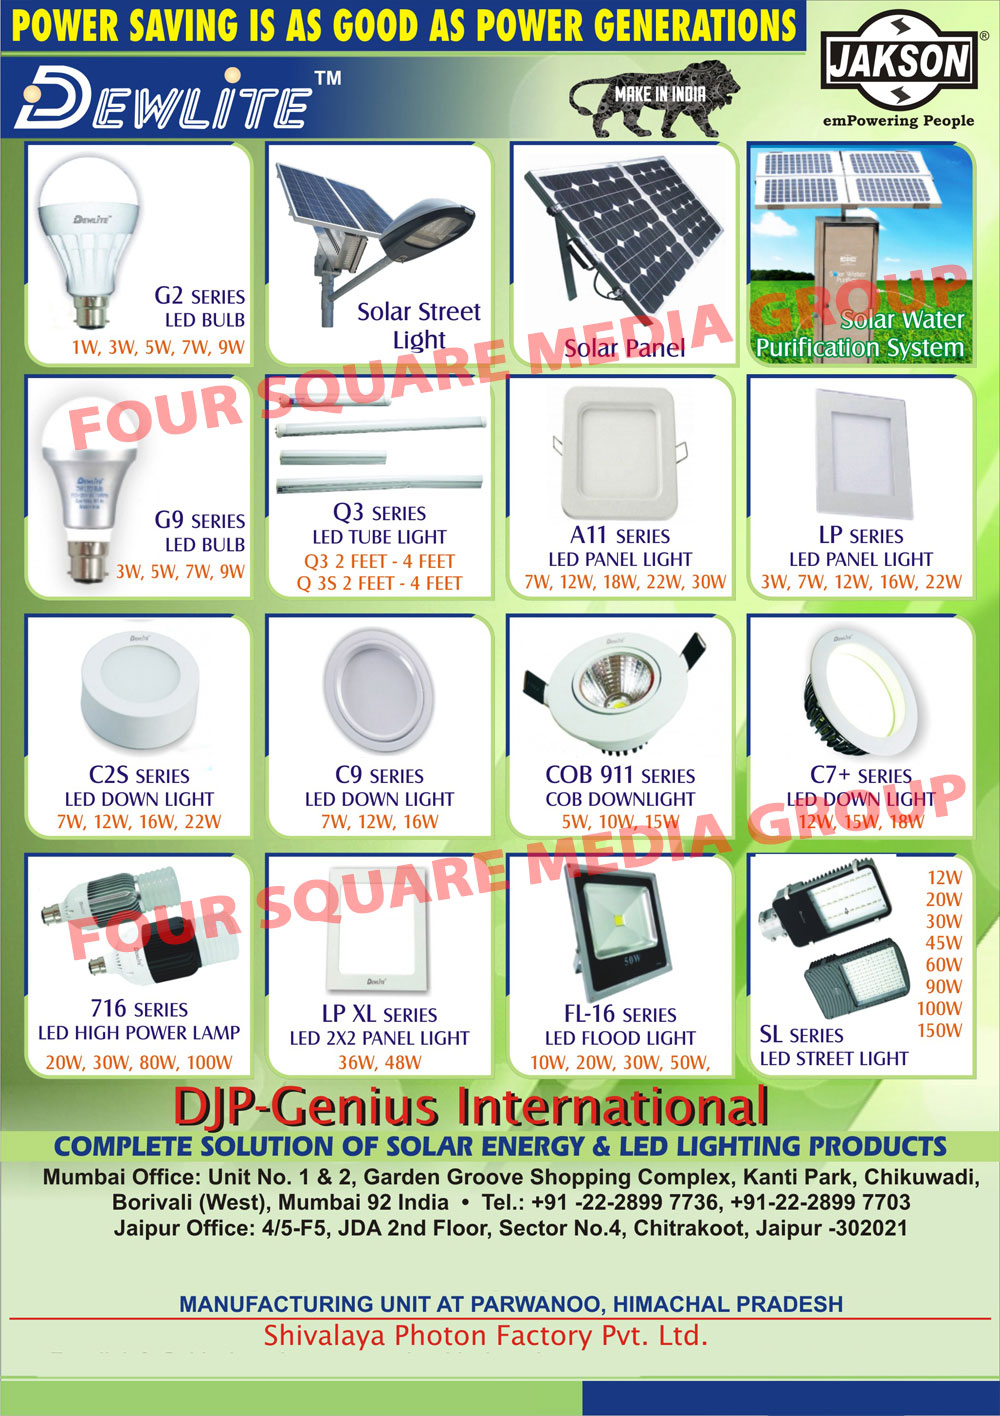 Led Bulbs, Solar Street Lights, Solar Panels, Solar Water Purification Systems, Led Tube Lights, Led Panel Lights, Down Lights, Led Down lights, Cob Down lights, Led Power Lamps, Led Flood Lights, Led Street Lights, Led Lighting Products, Solar Energy Lighting Products